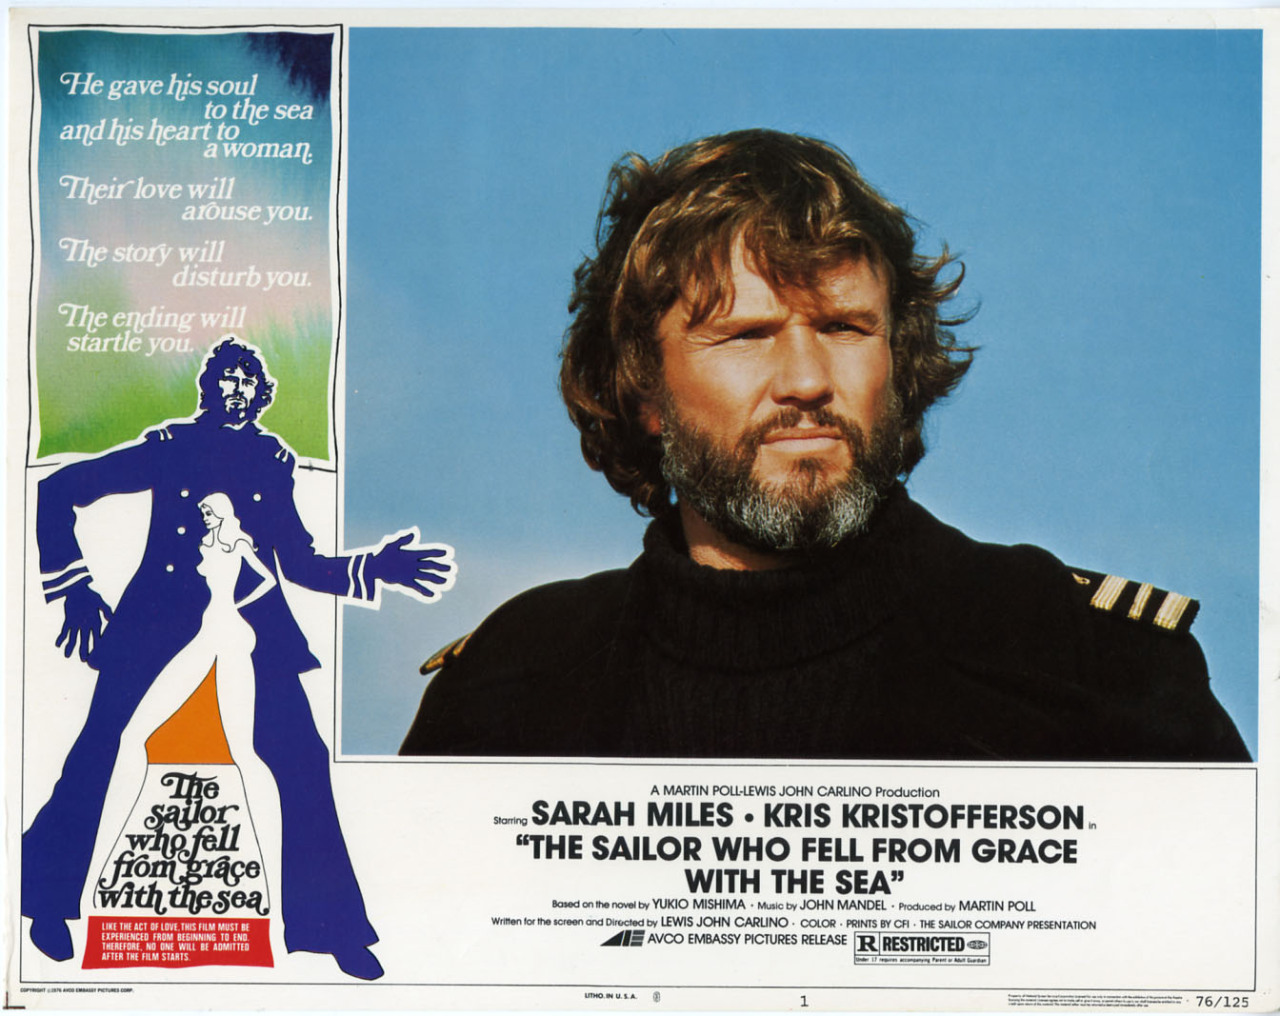 watch the sailor who fell from grace with the sea (1976)